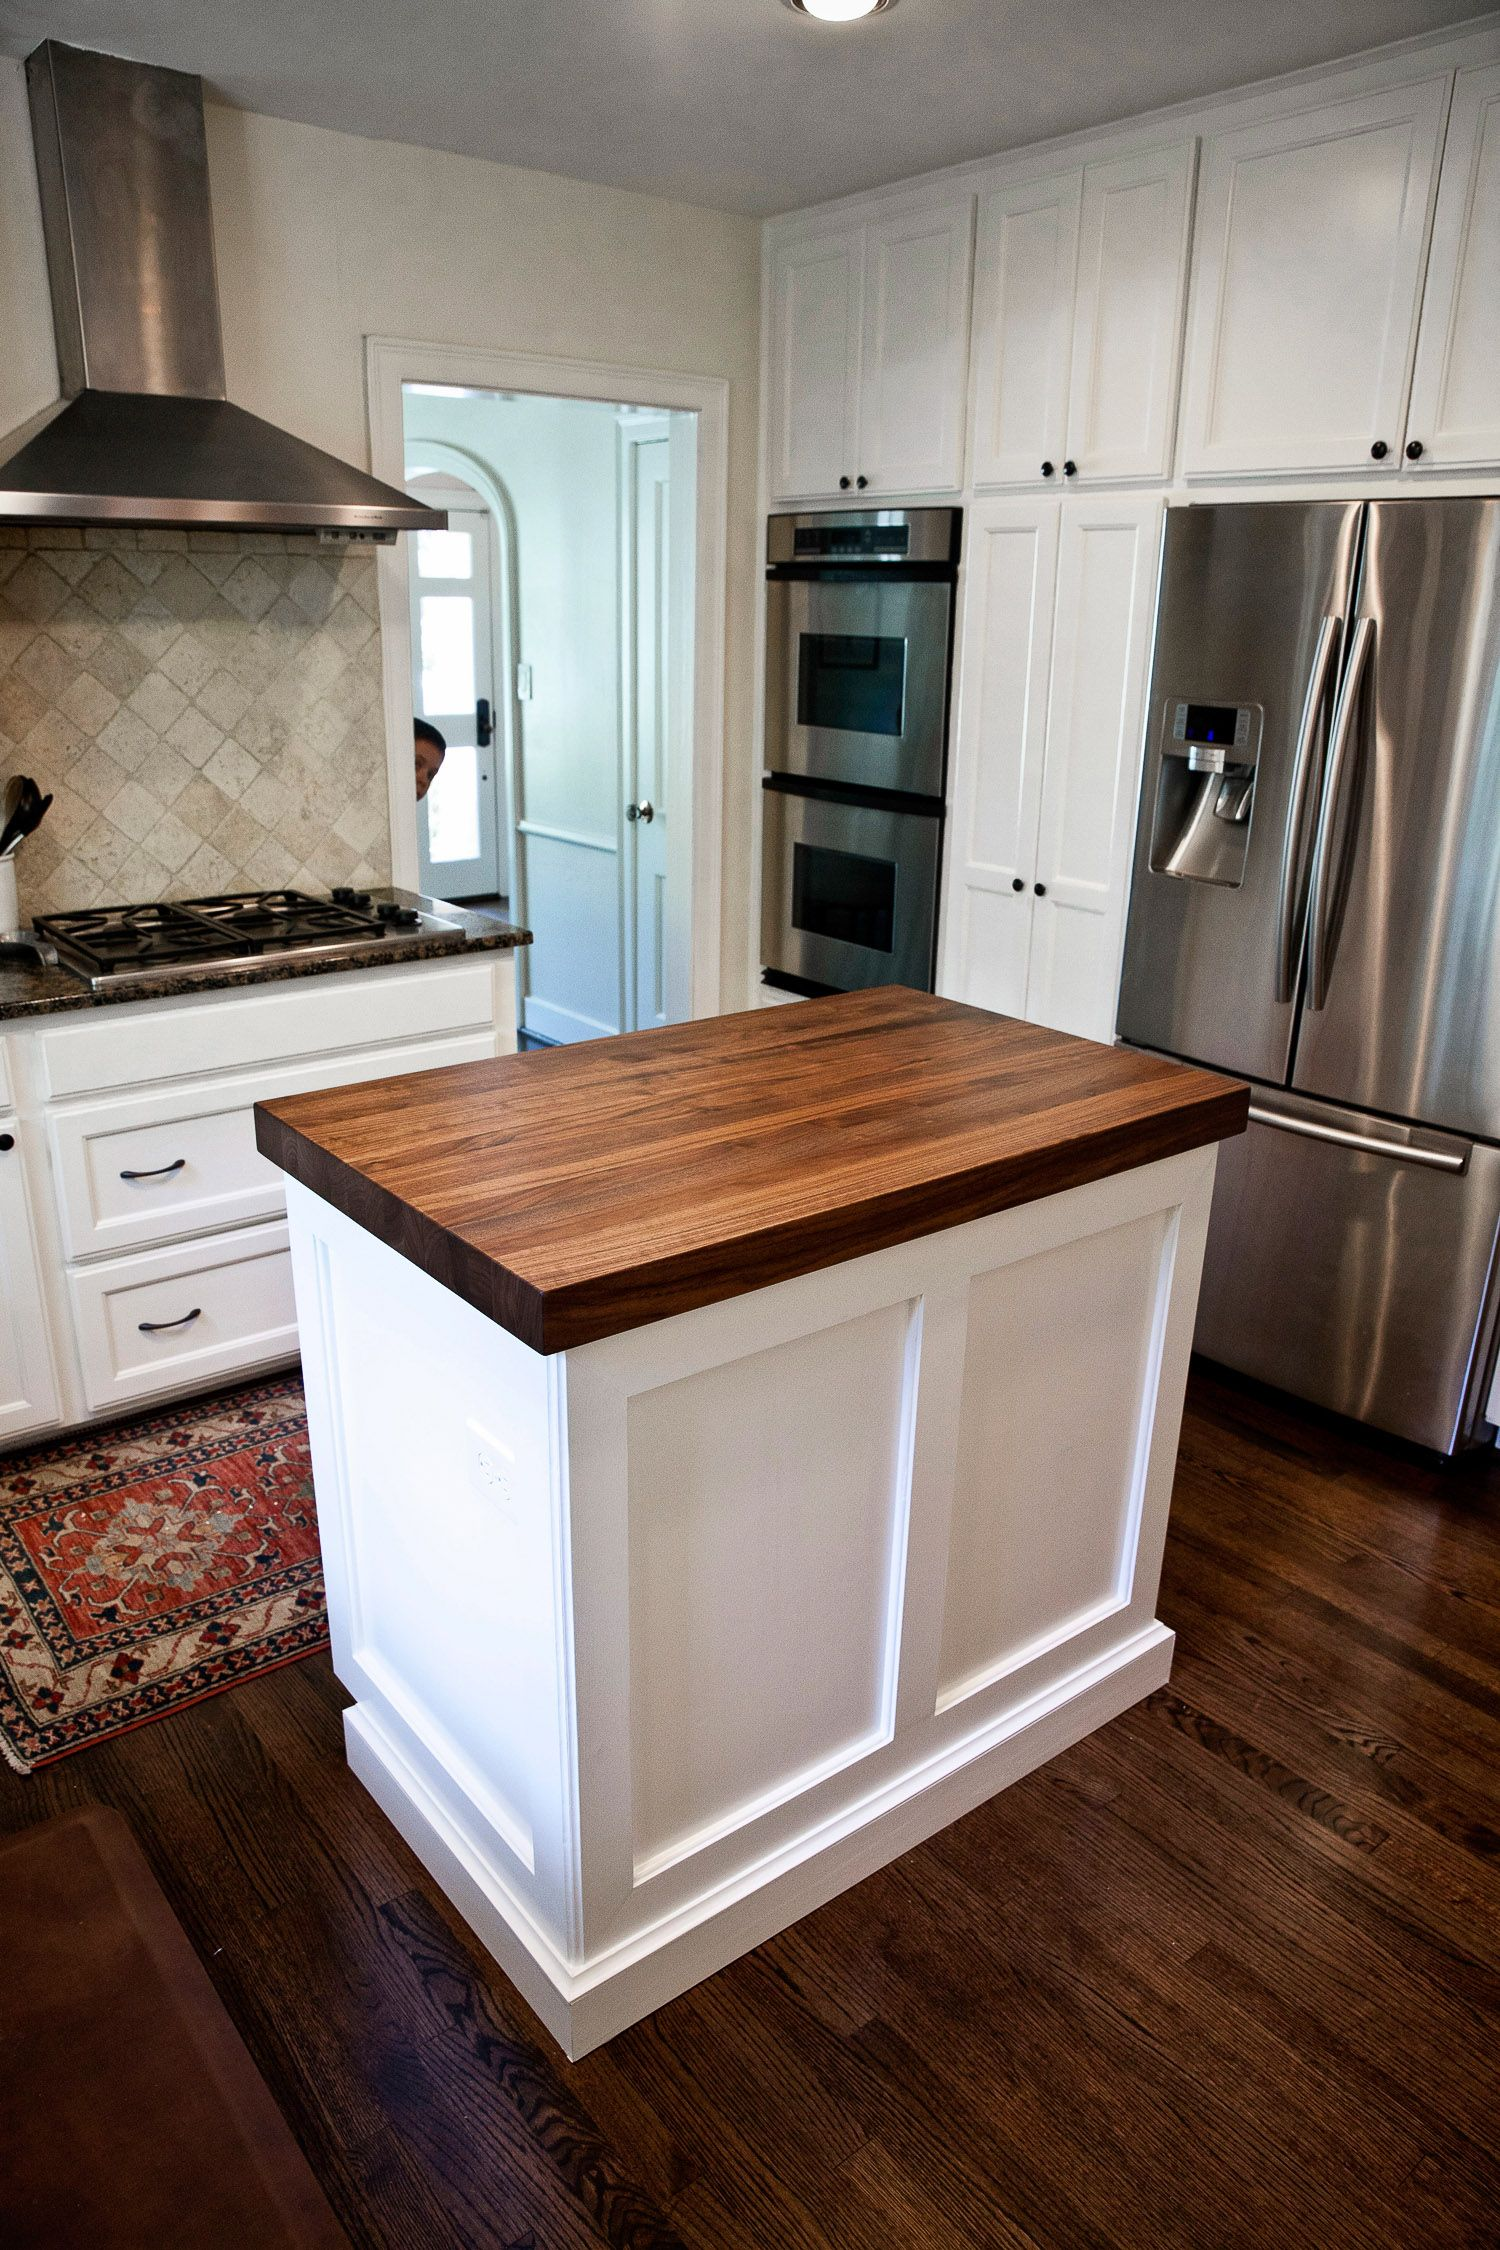 21 unique kitchen island ideas for every space and budget kitchen island dimensions kitchen on kitchen island ideas in small kitchen id=12791